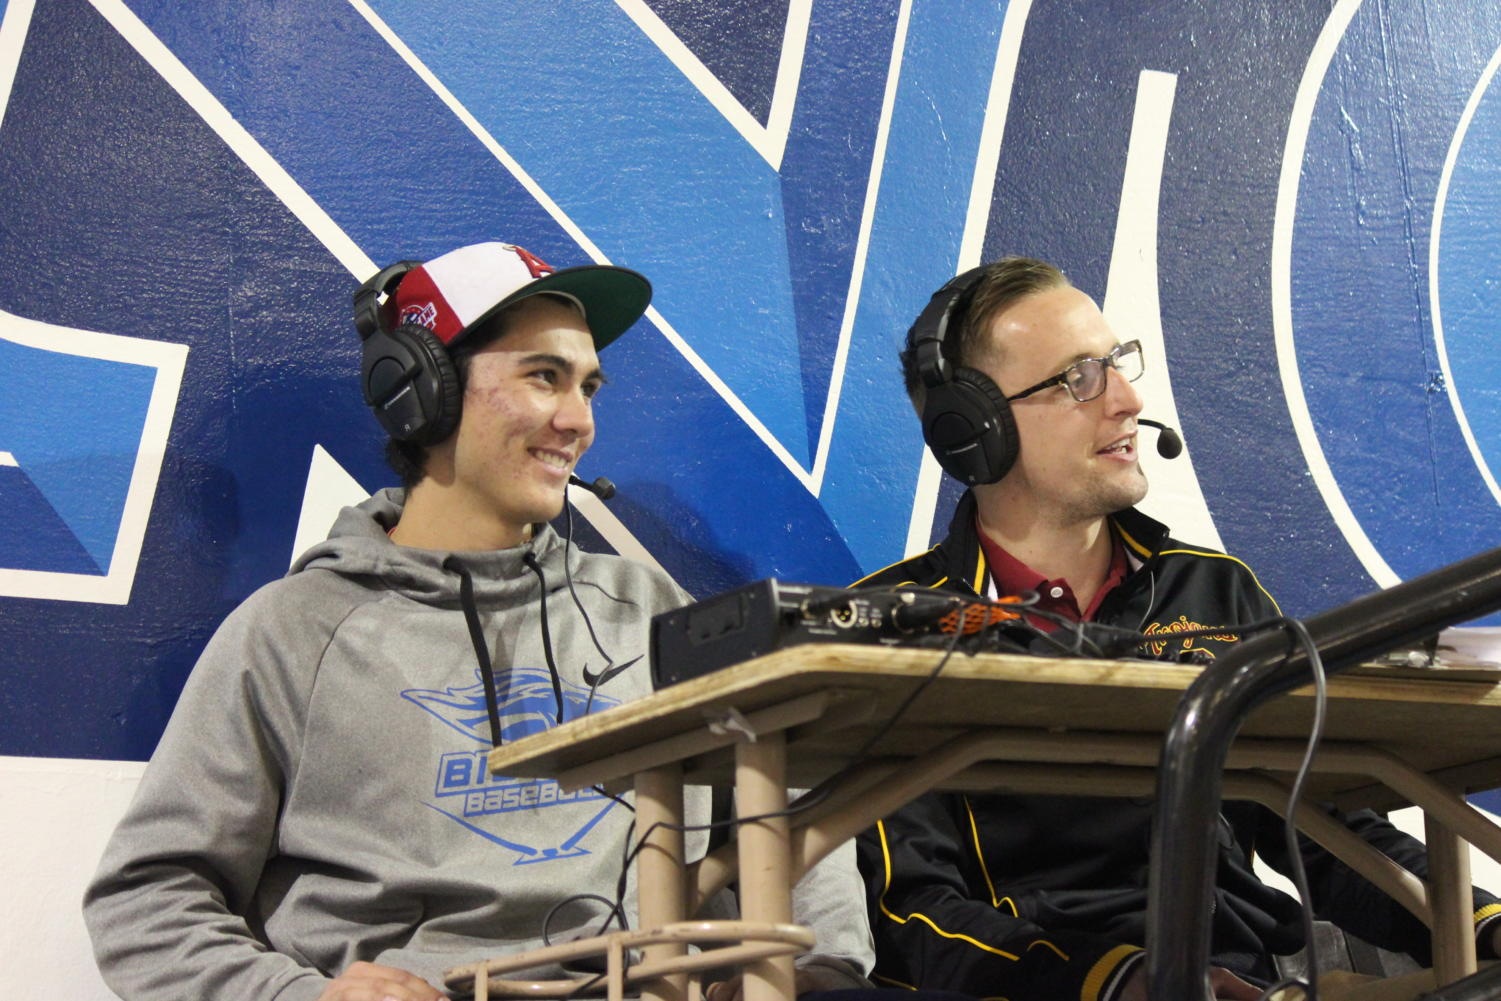 Matthew Rosga with Bronco Round up doing a broadcast on Boys basketball game with Bradford Evans from KIBS